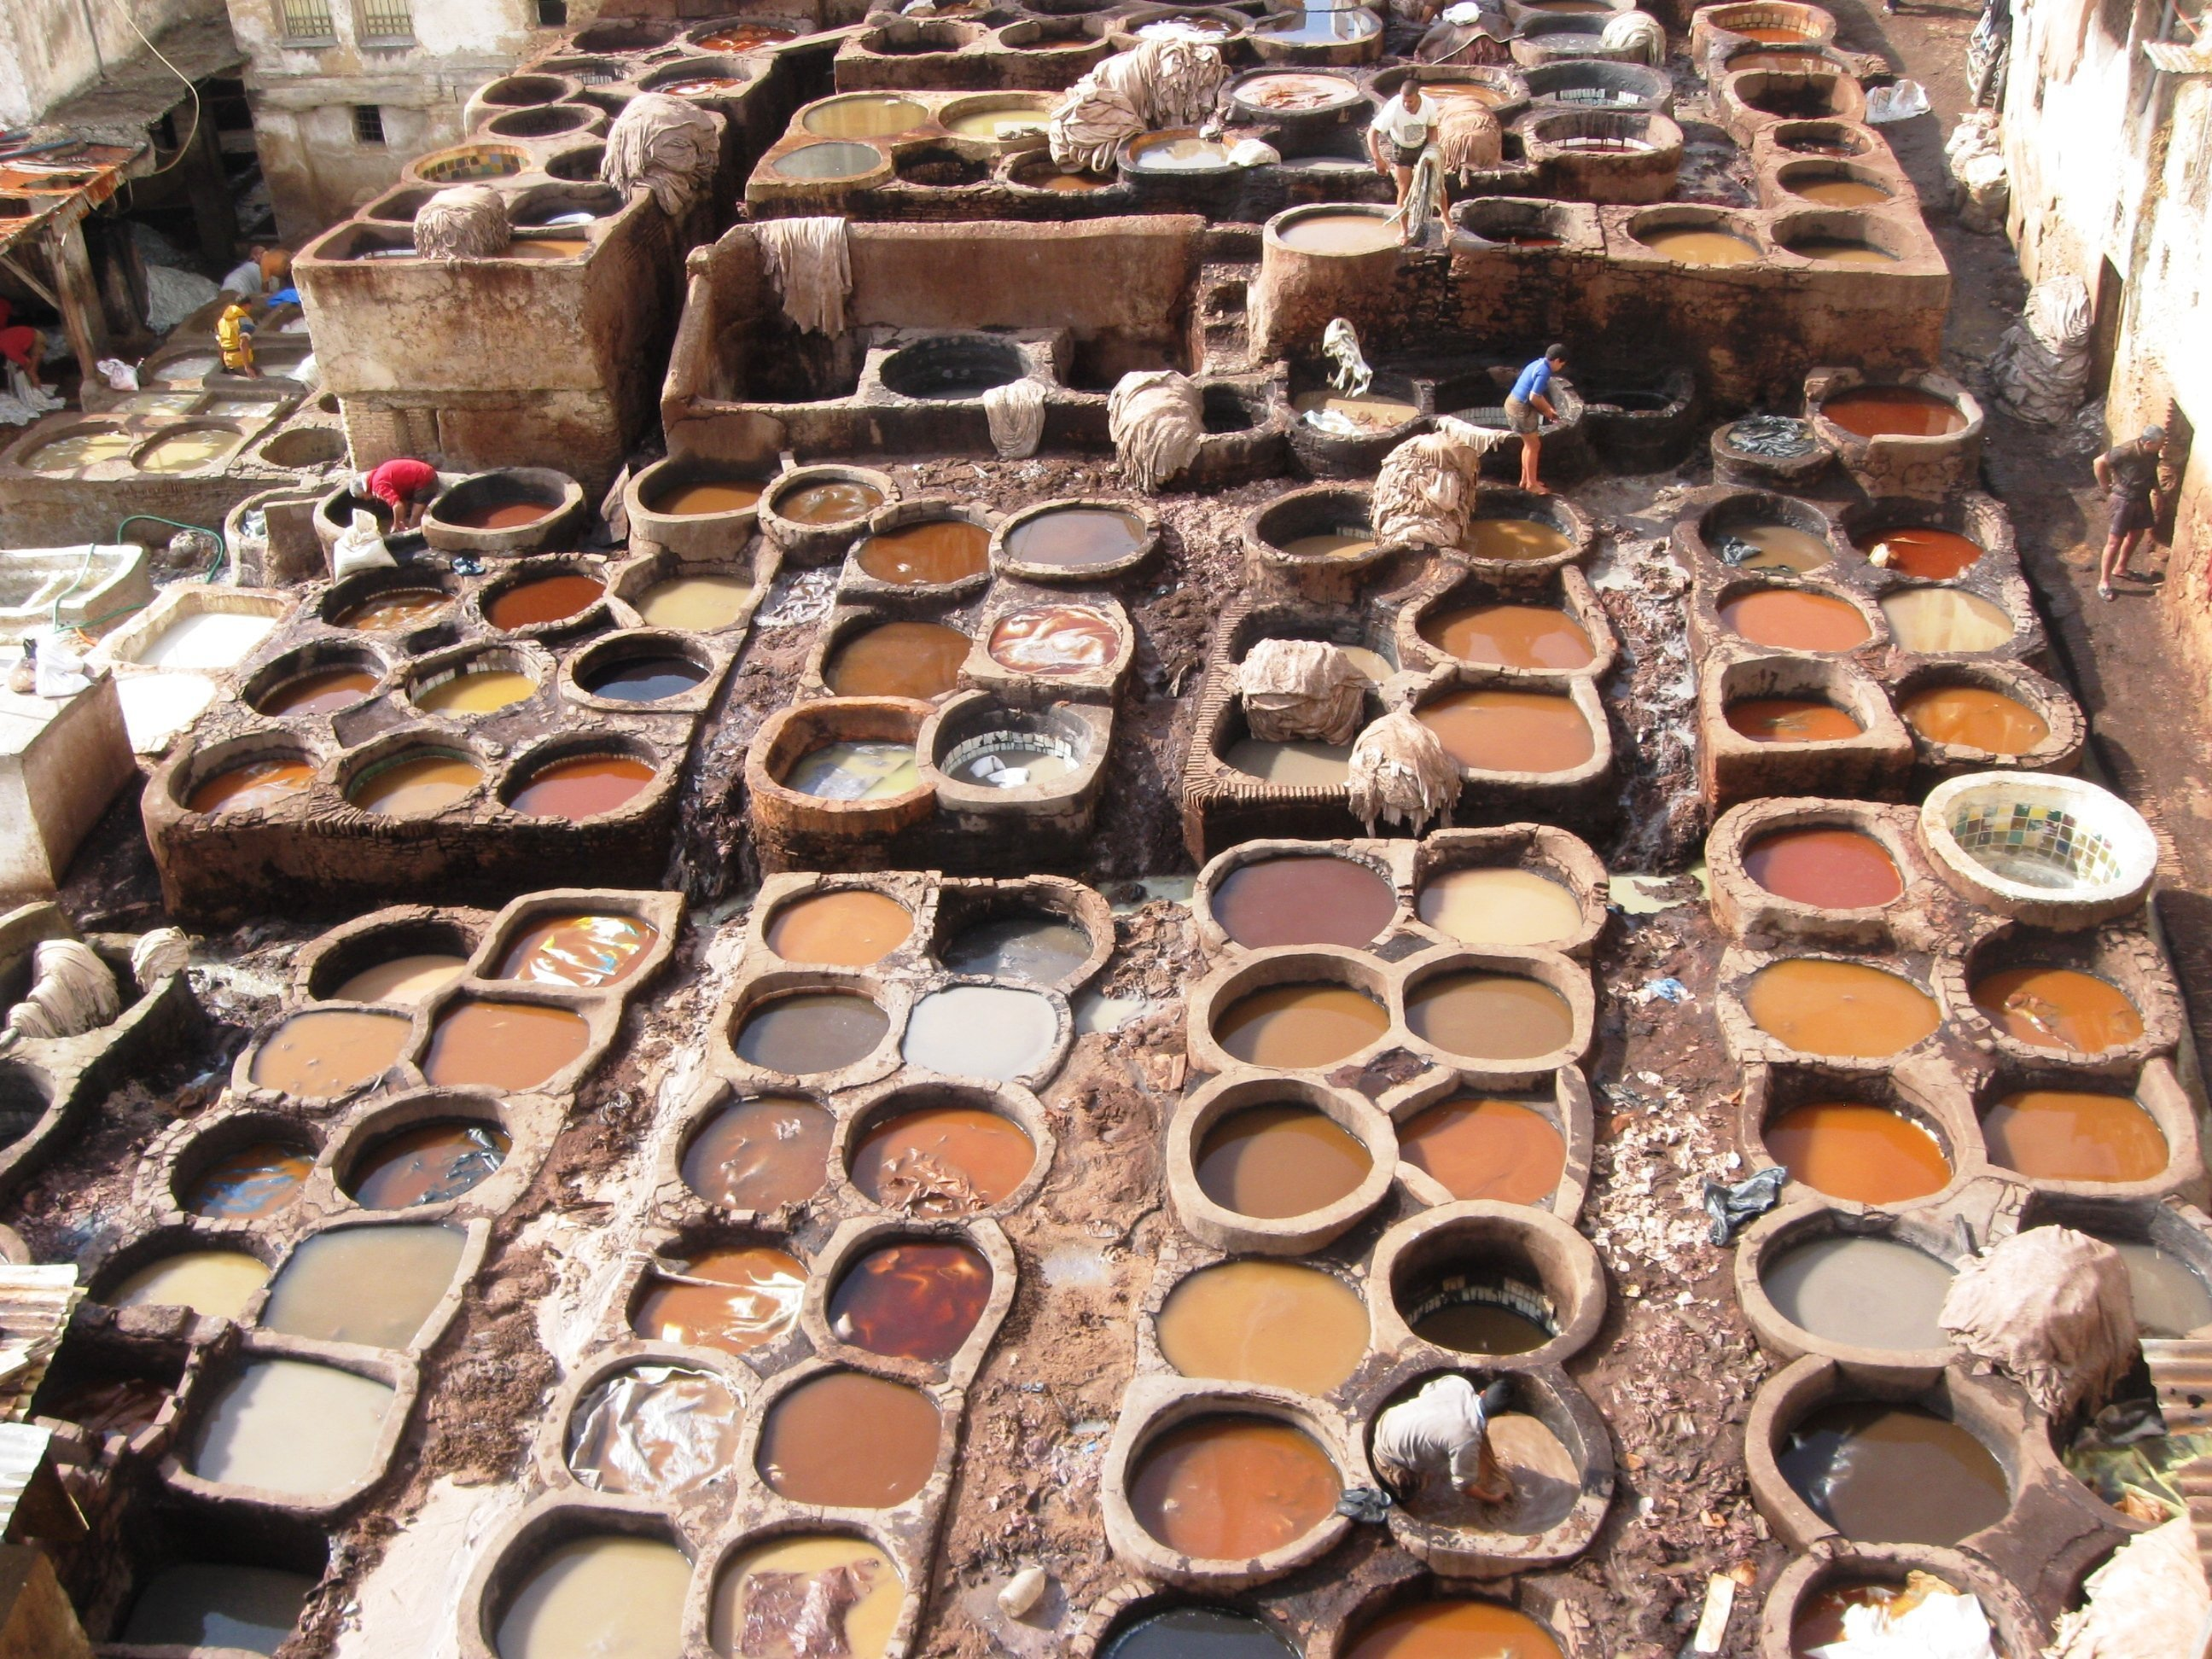 The leather tanneries of Fez. - A photo blog of Morocco